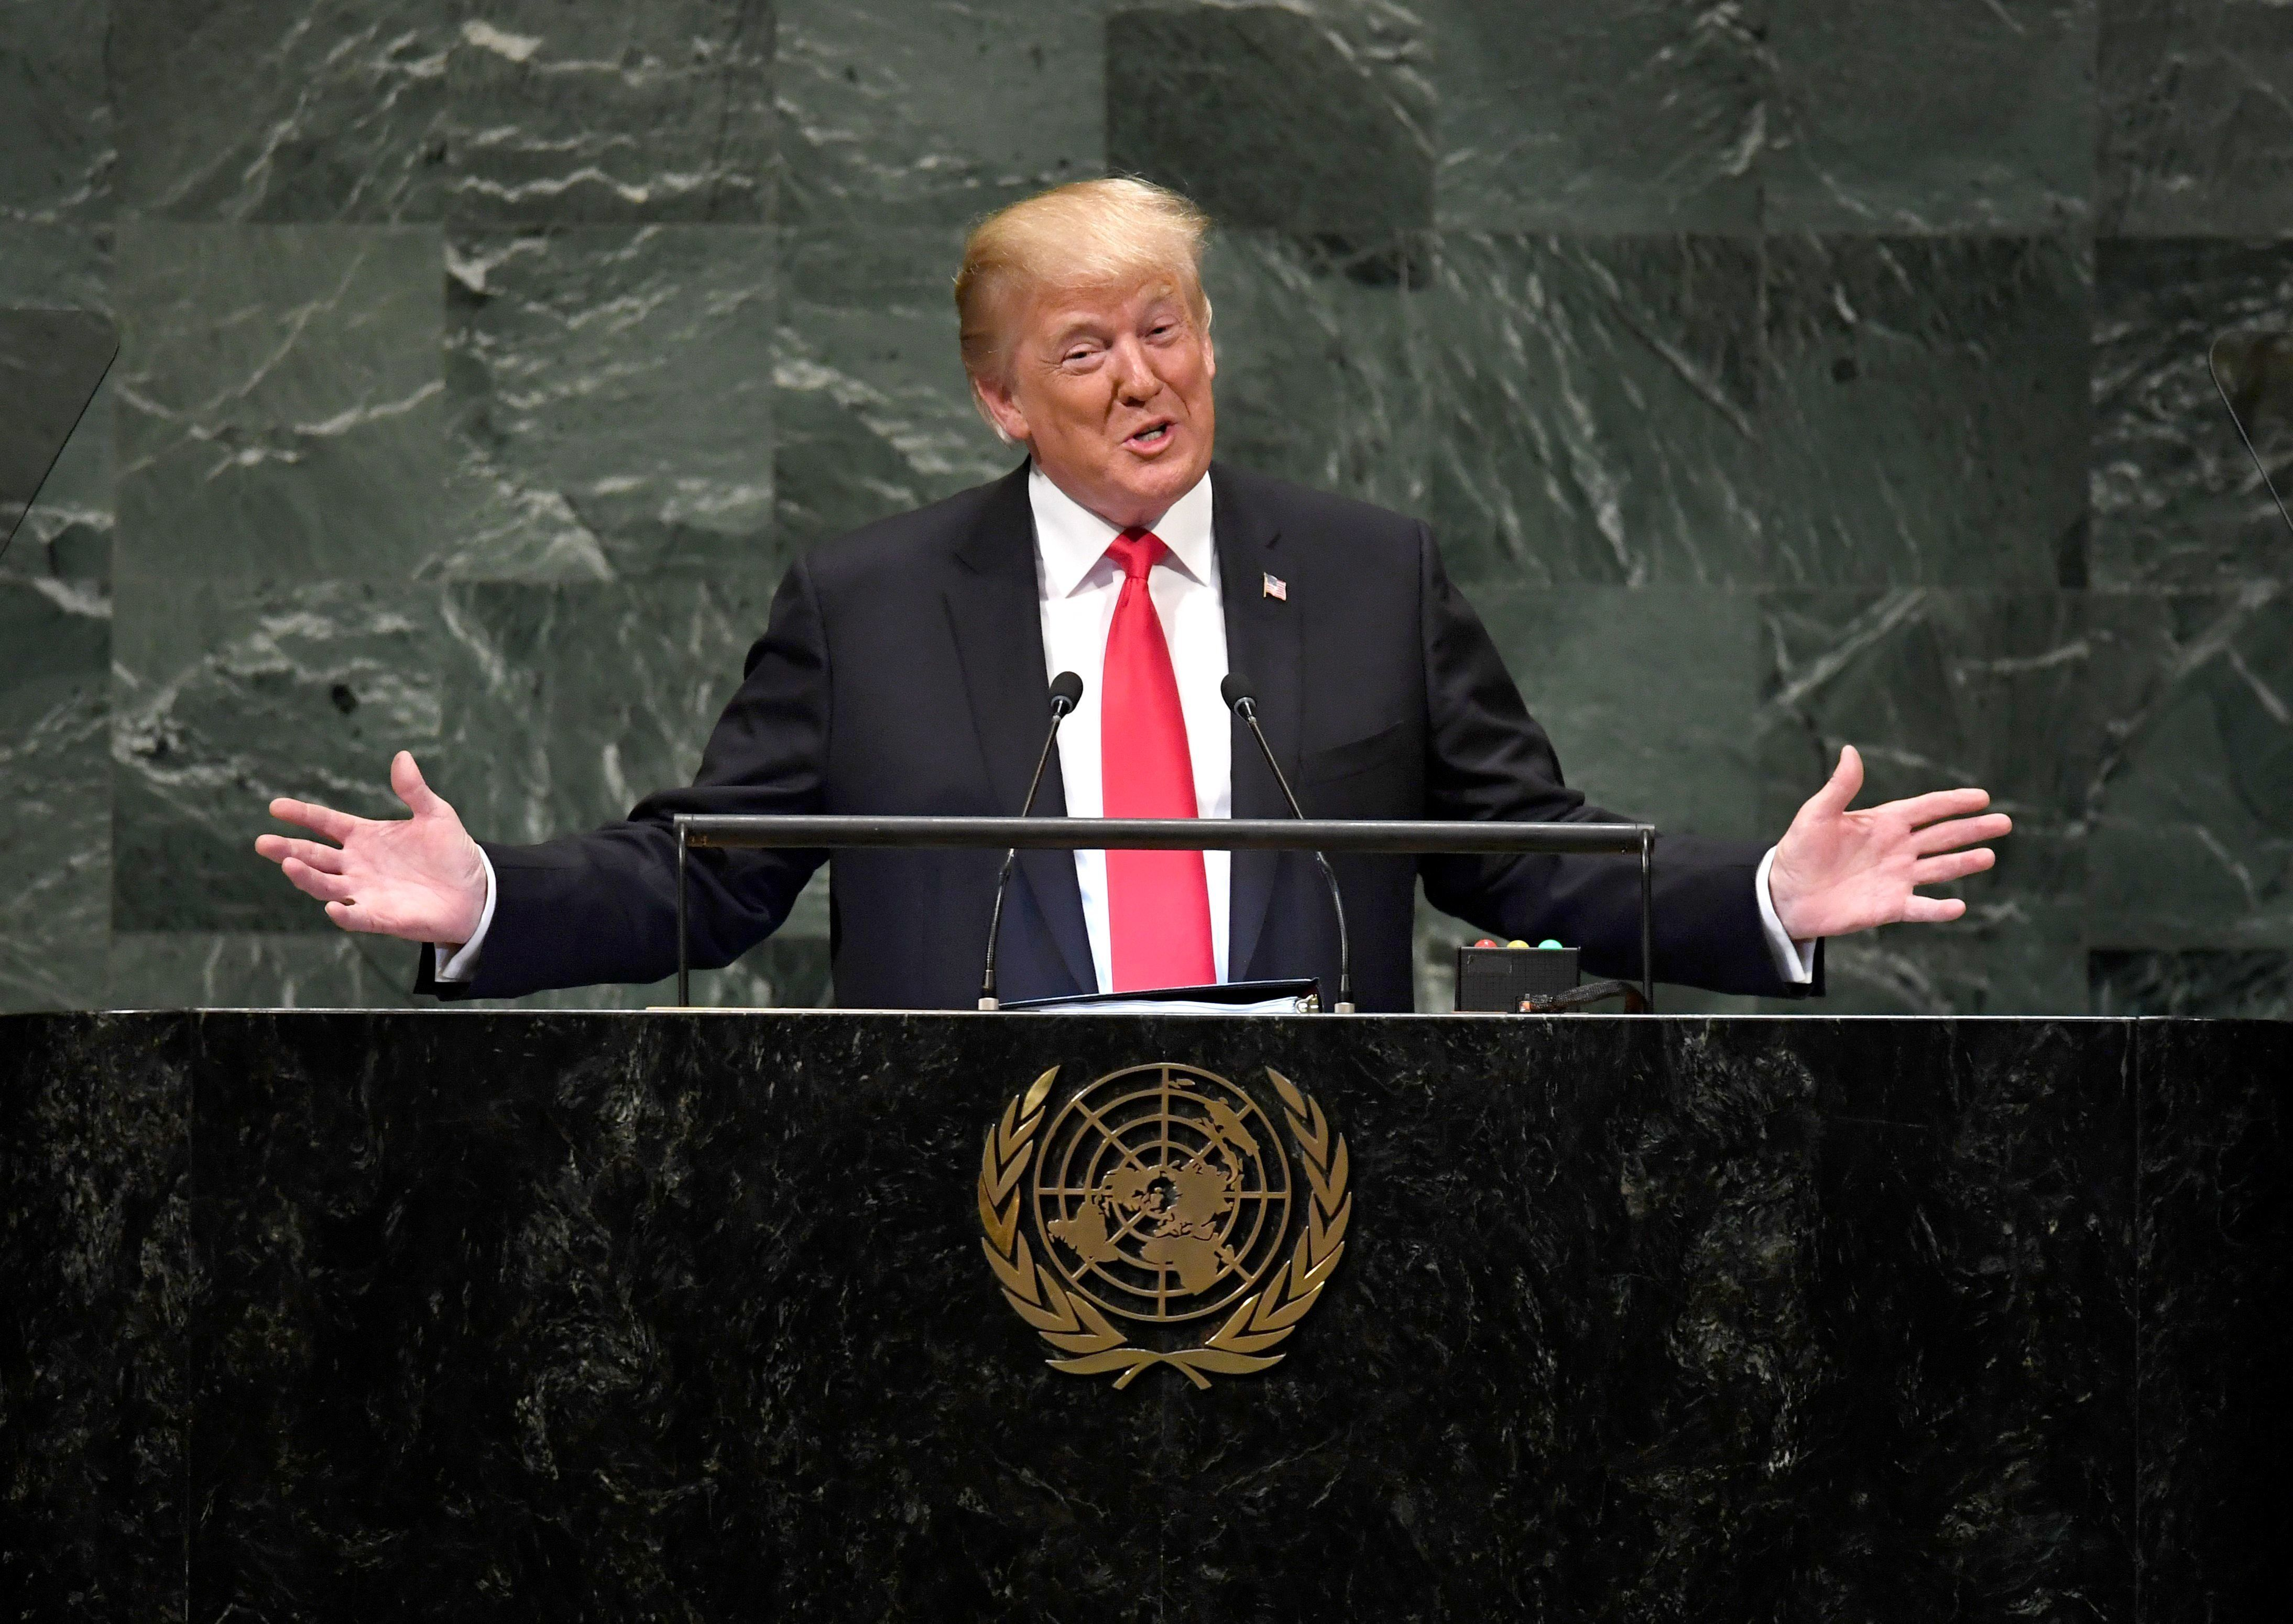 Donald Trump's Boastful Comments Draw Laughter At United Nations General